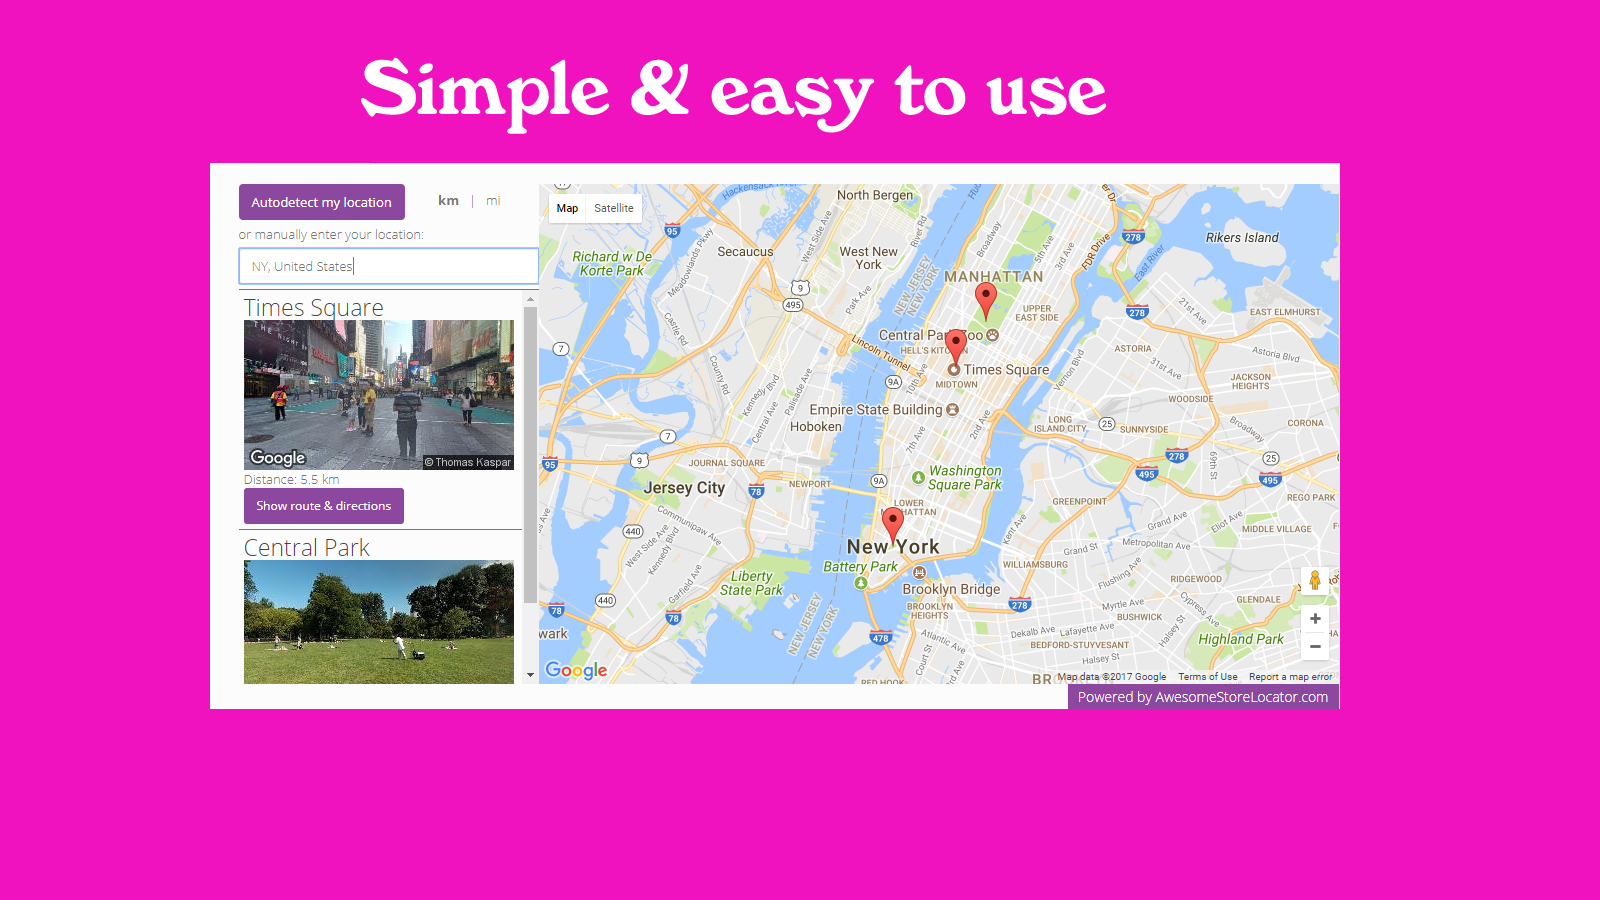 Simple store locator, very easy to use